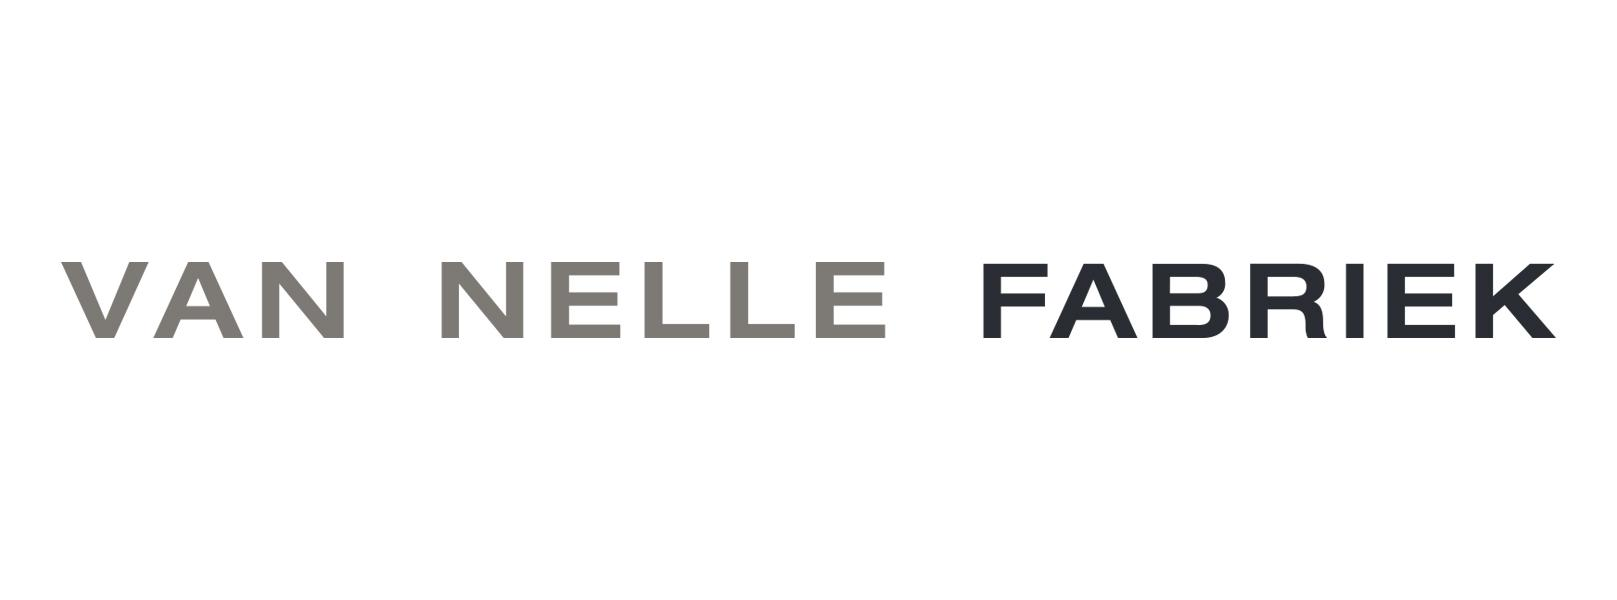 Van Nelle Fabriek Events